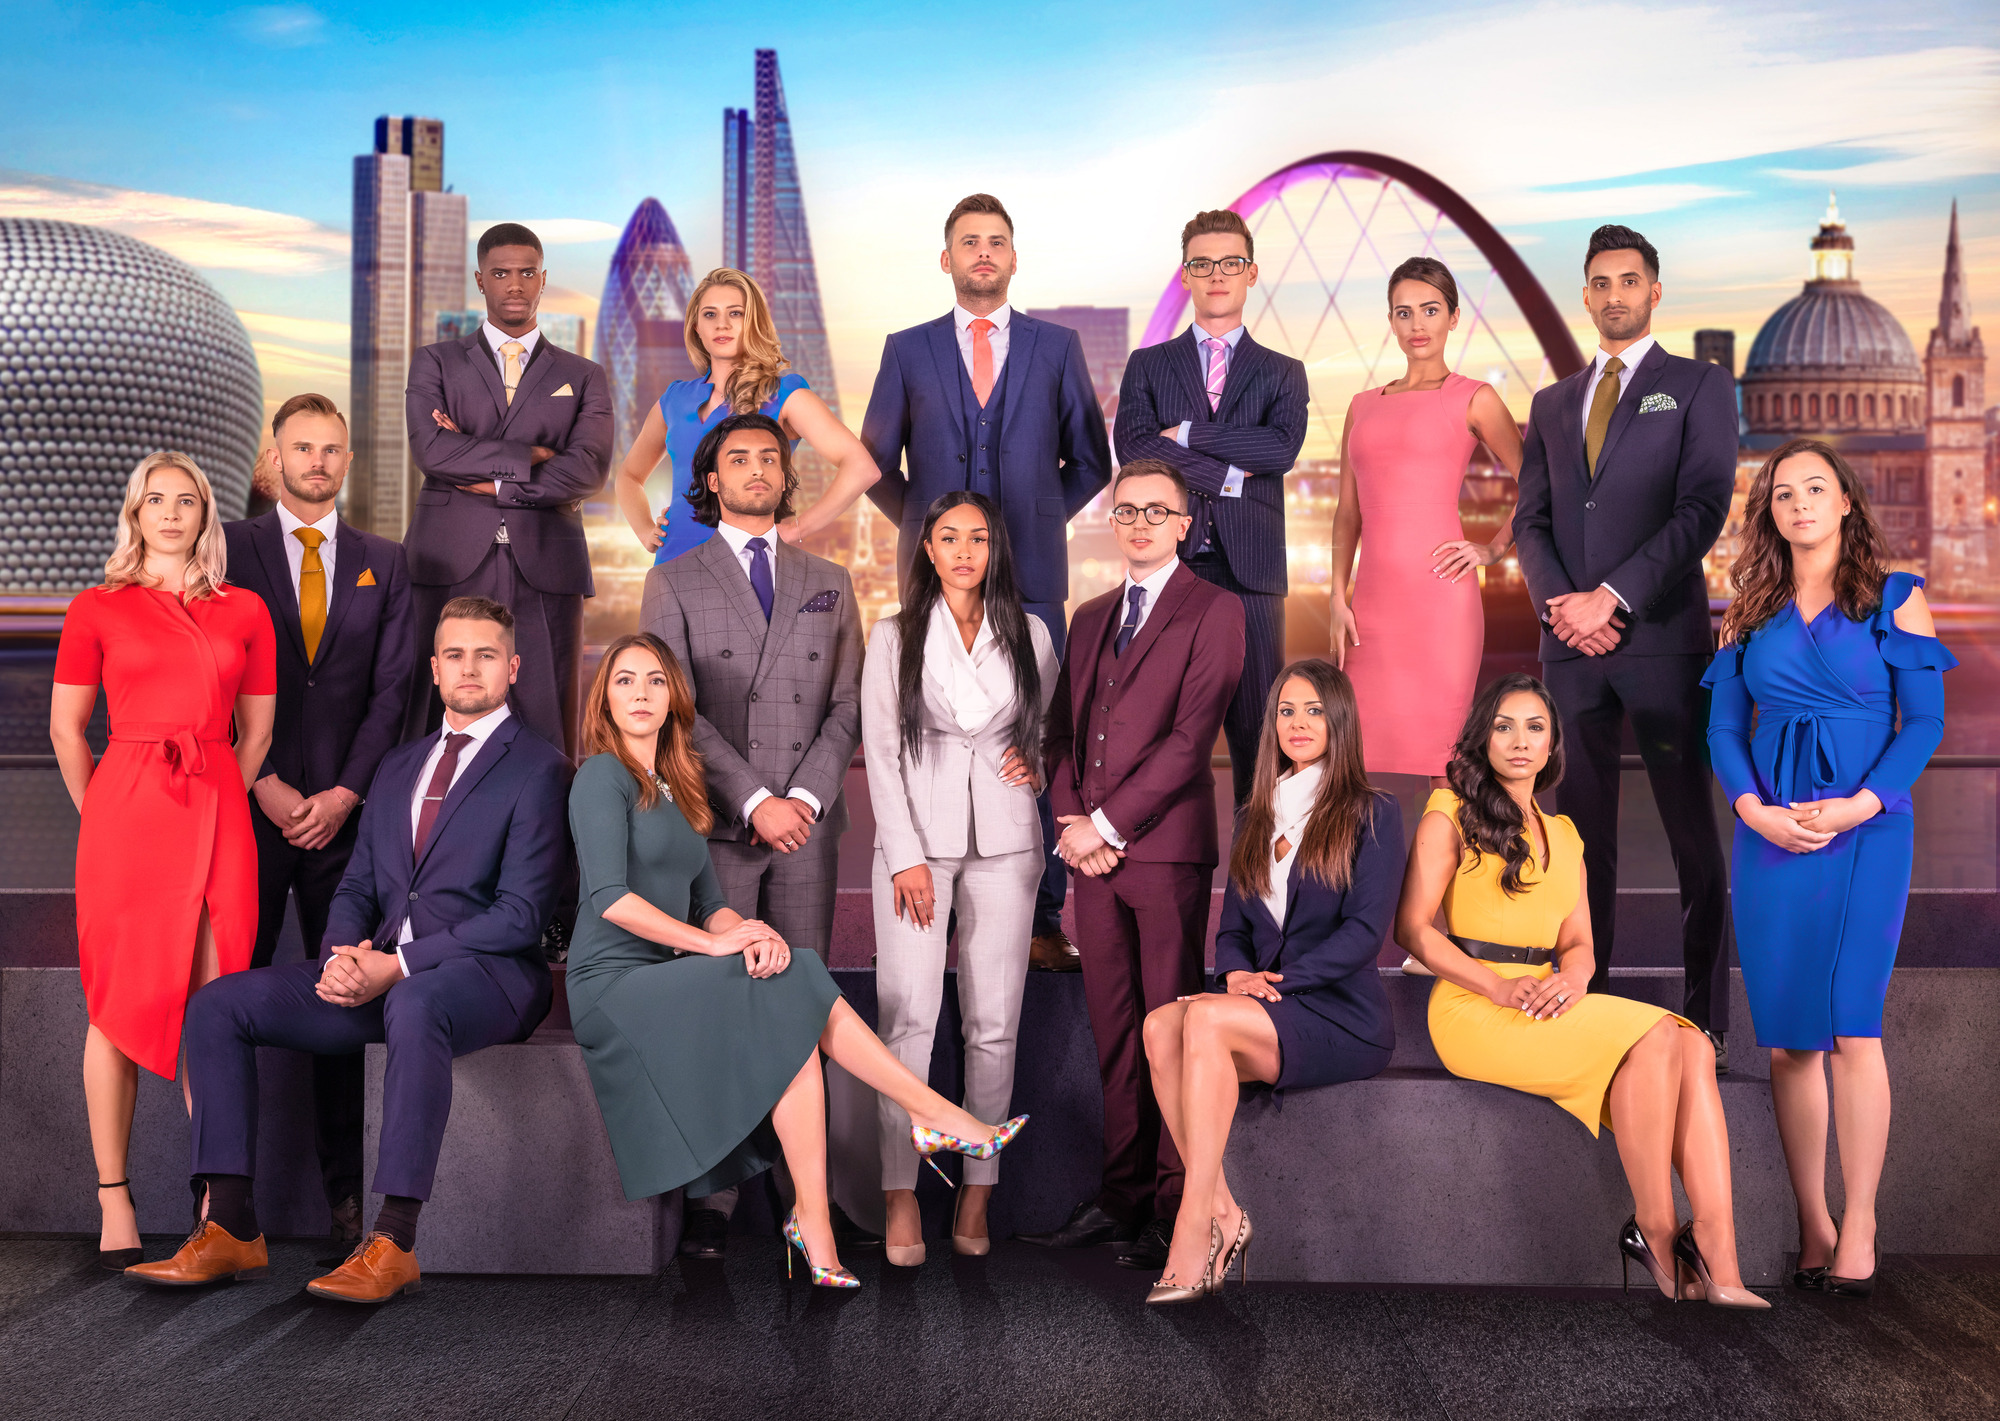 Who are the final five candidates in The Apprentice 2018?